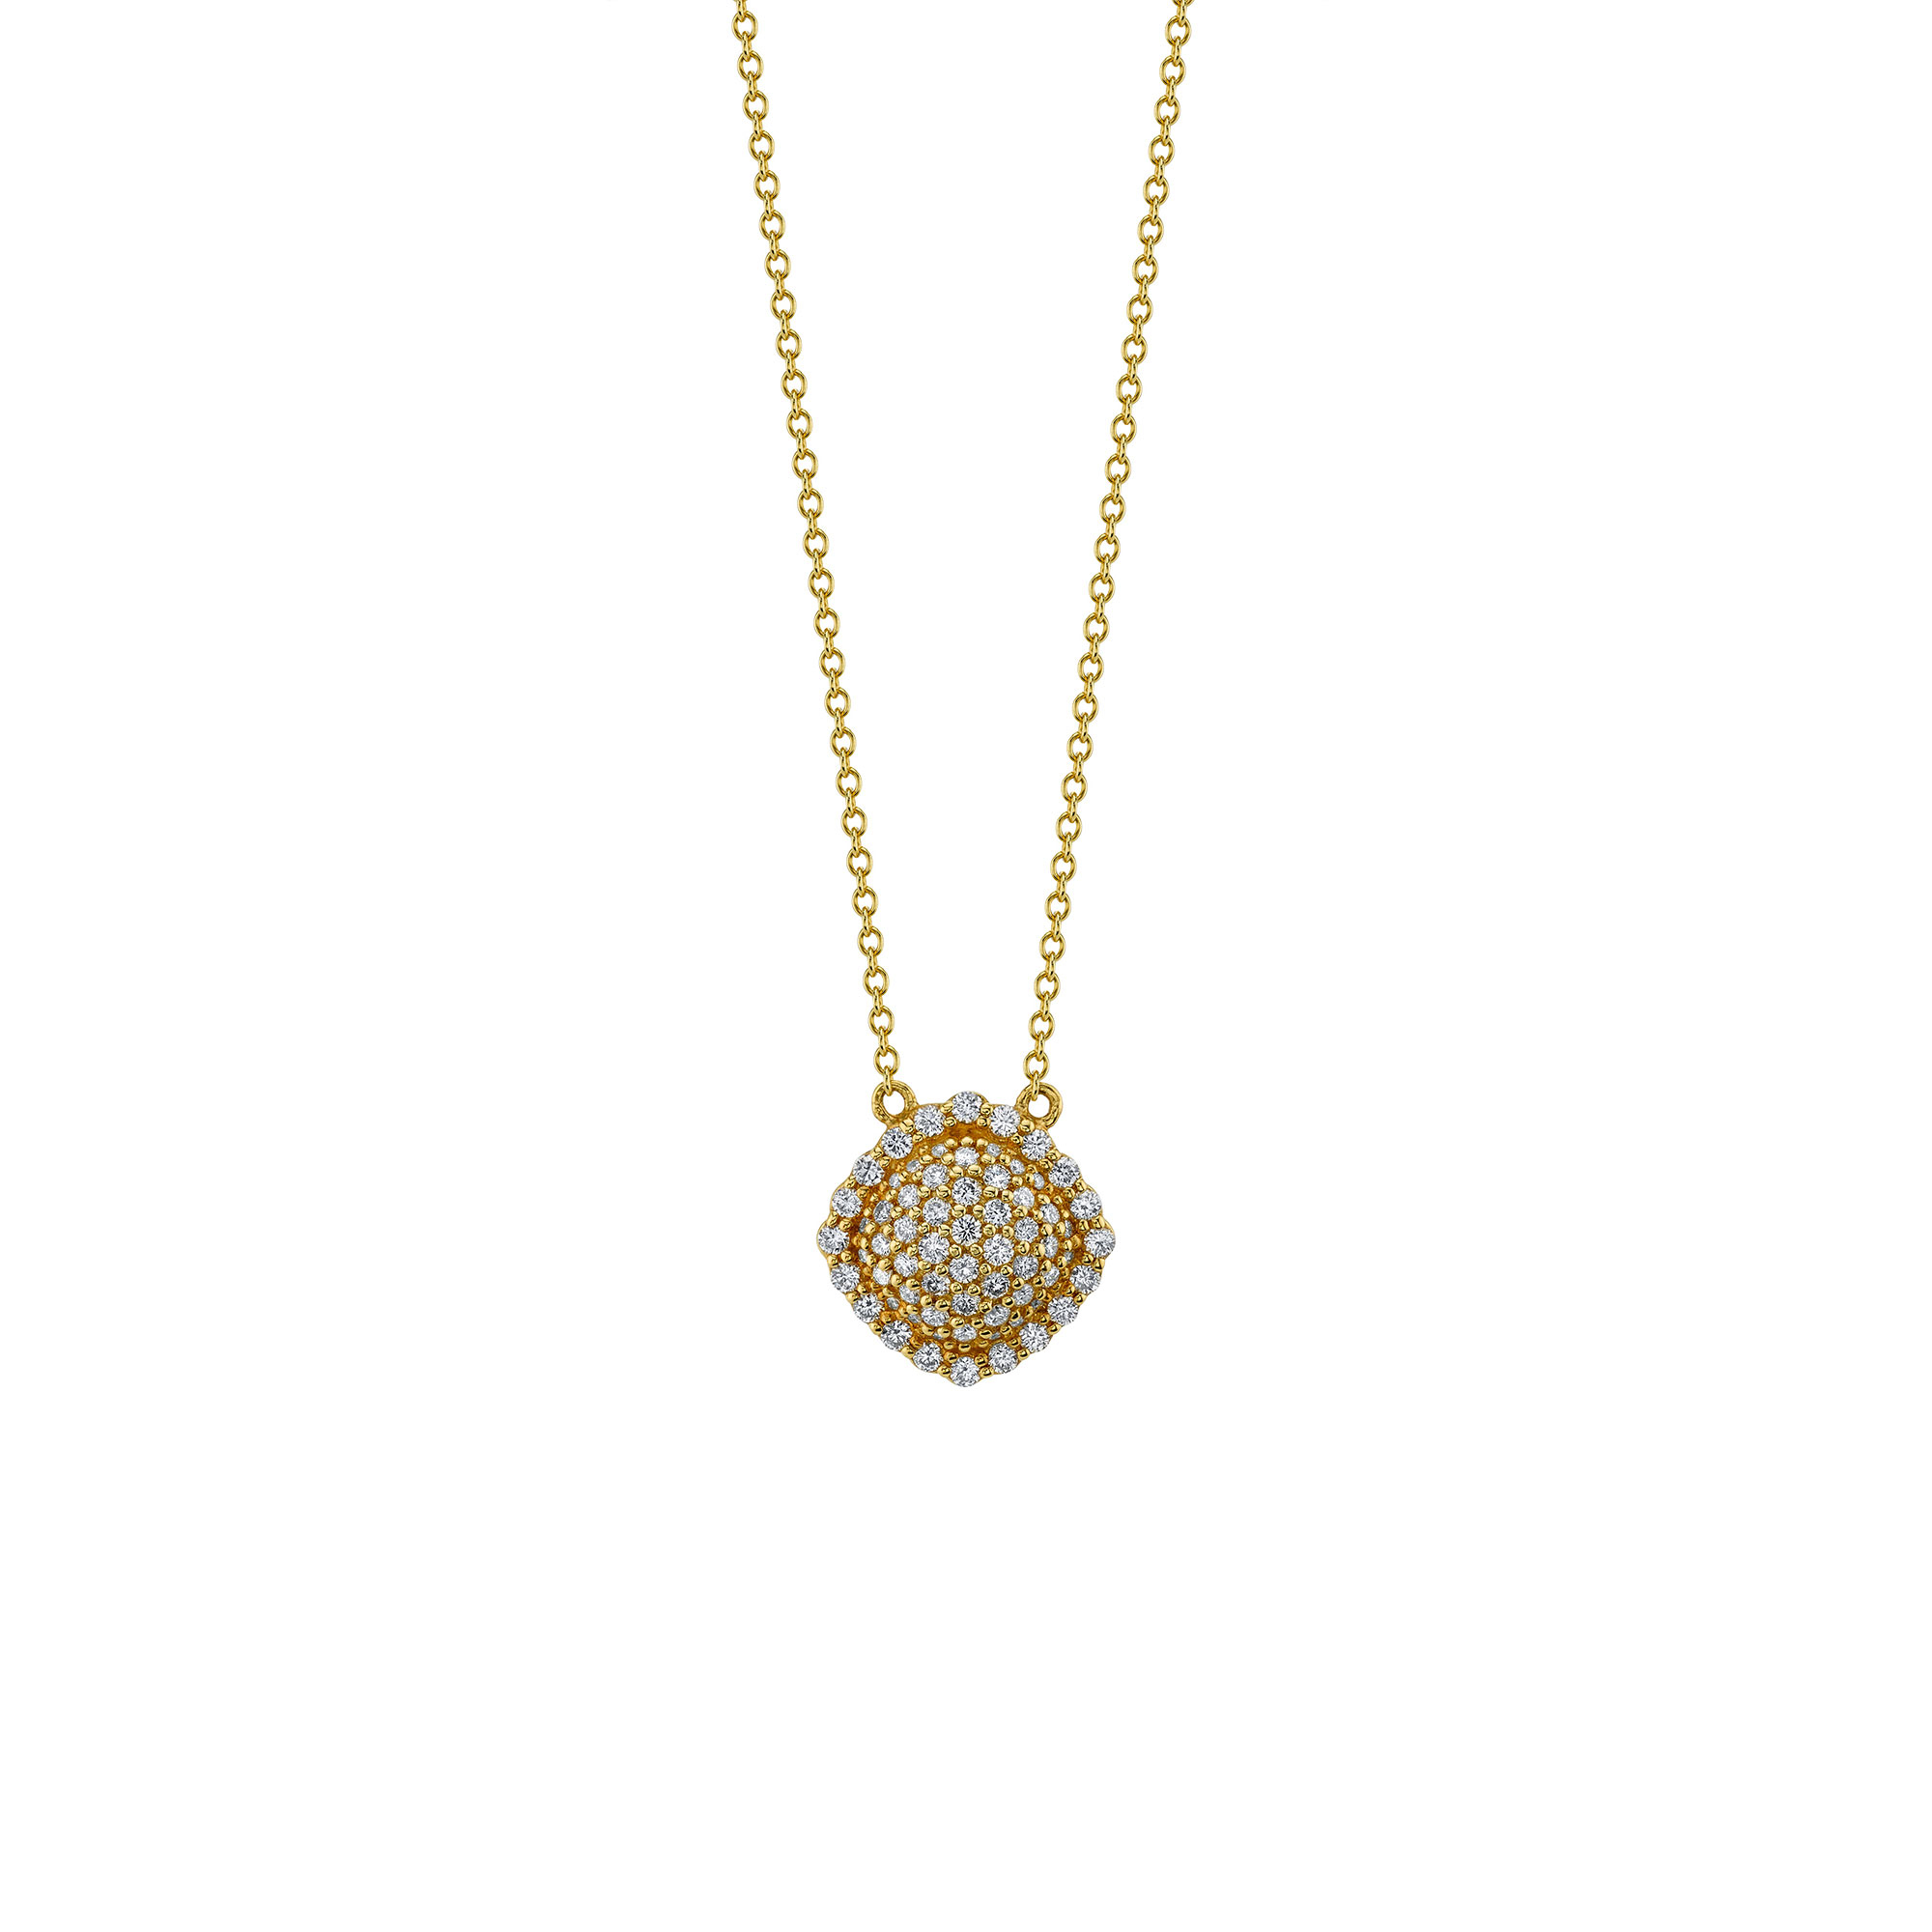 Sloane Street 18K Rose Gold .47cts  Diamond Gold Necklace with Stones P006-WD-R